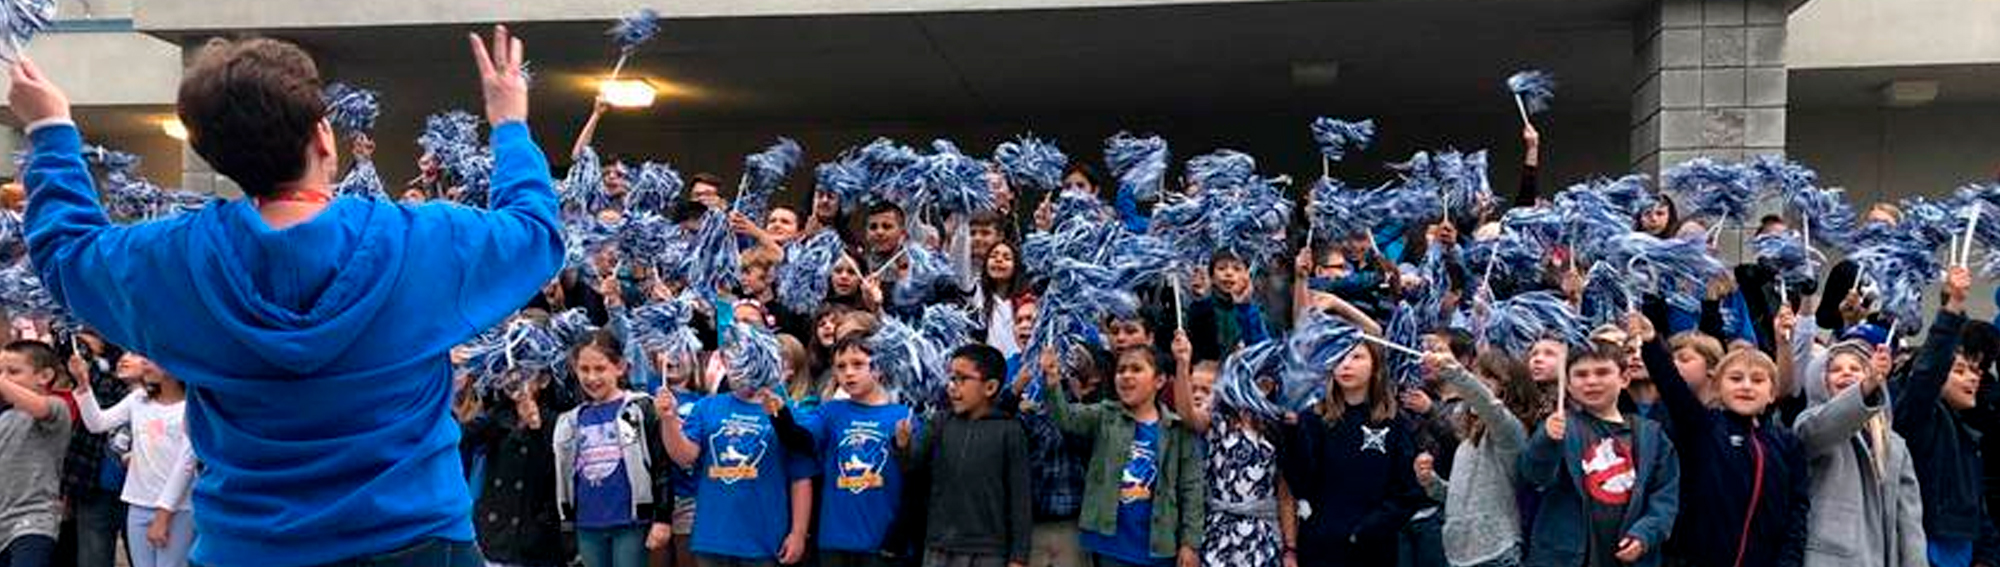 students and staff cheering and waving pom poms